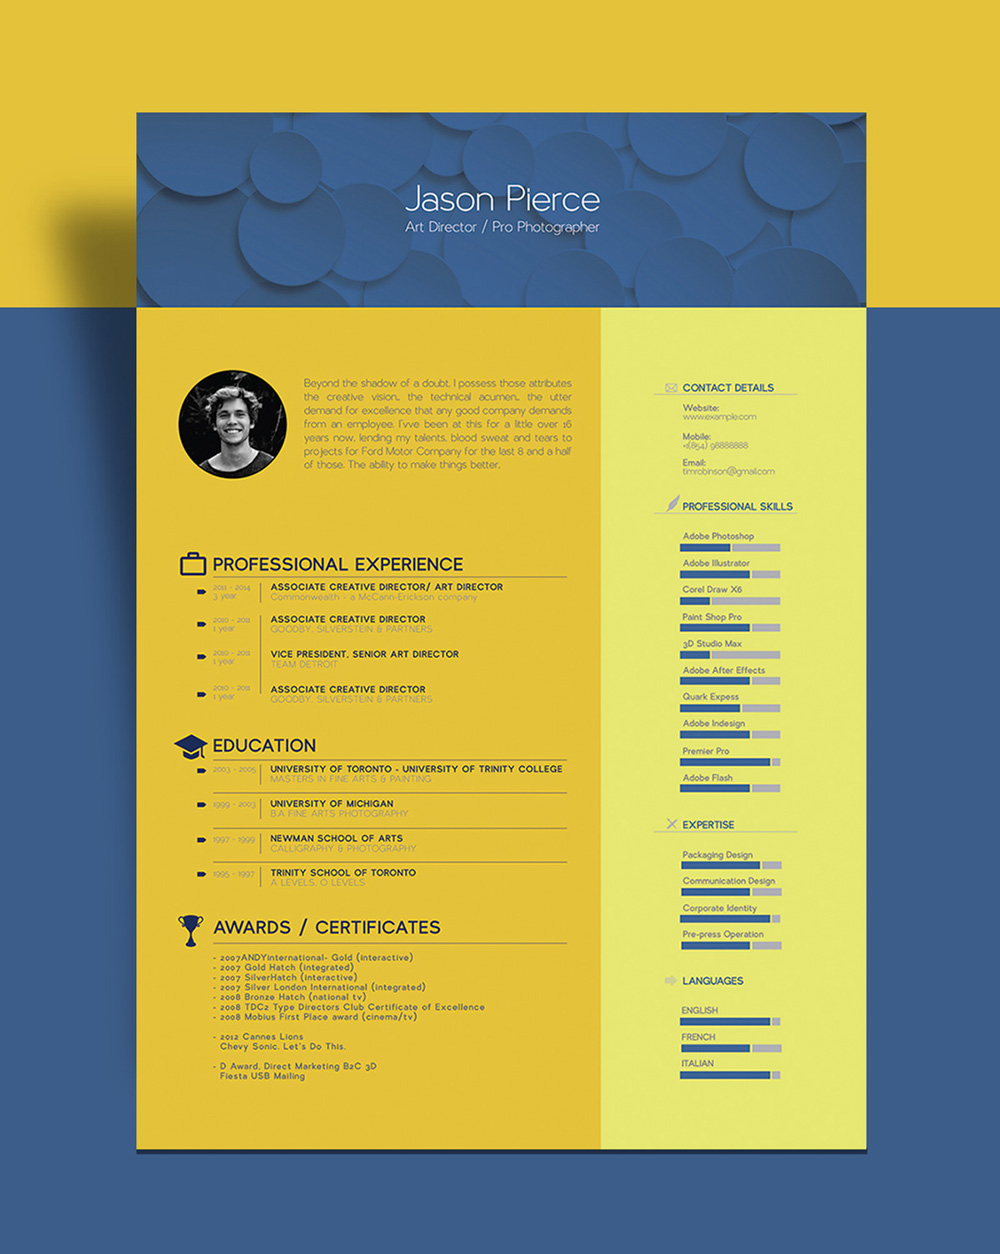 Free-Resume-CV-Template-for-graphic-designers-3